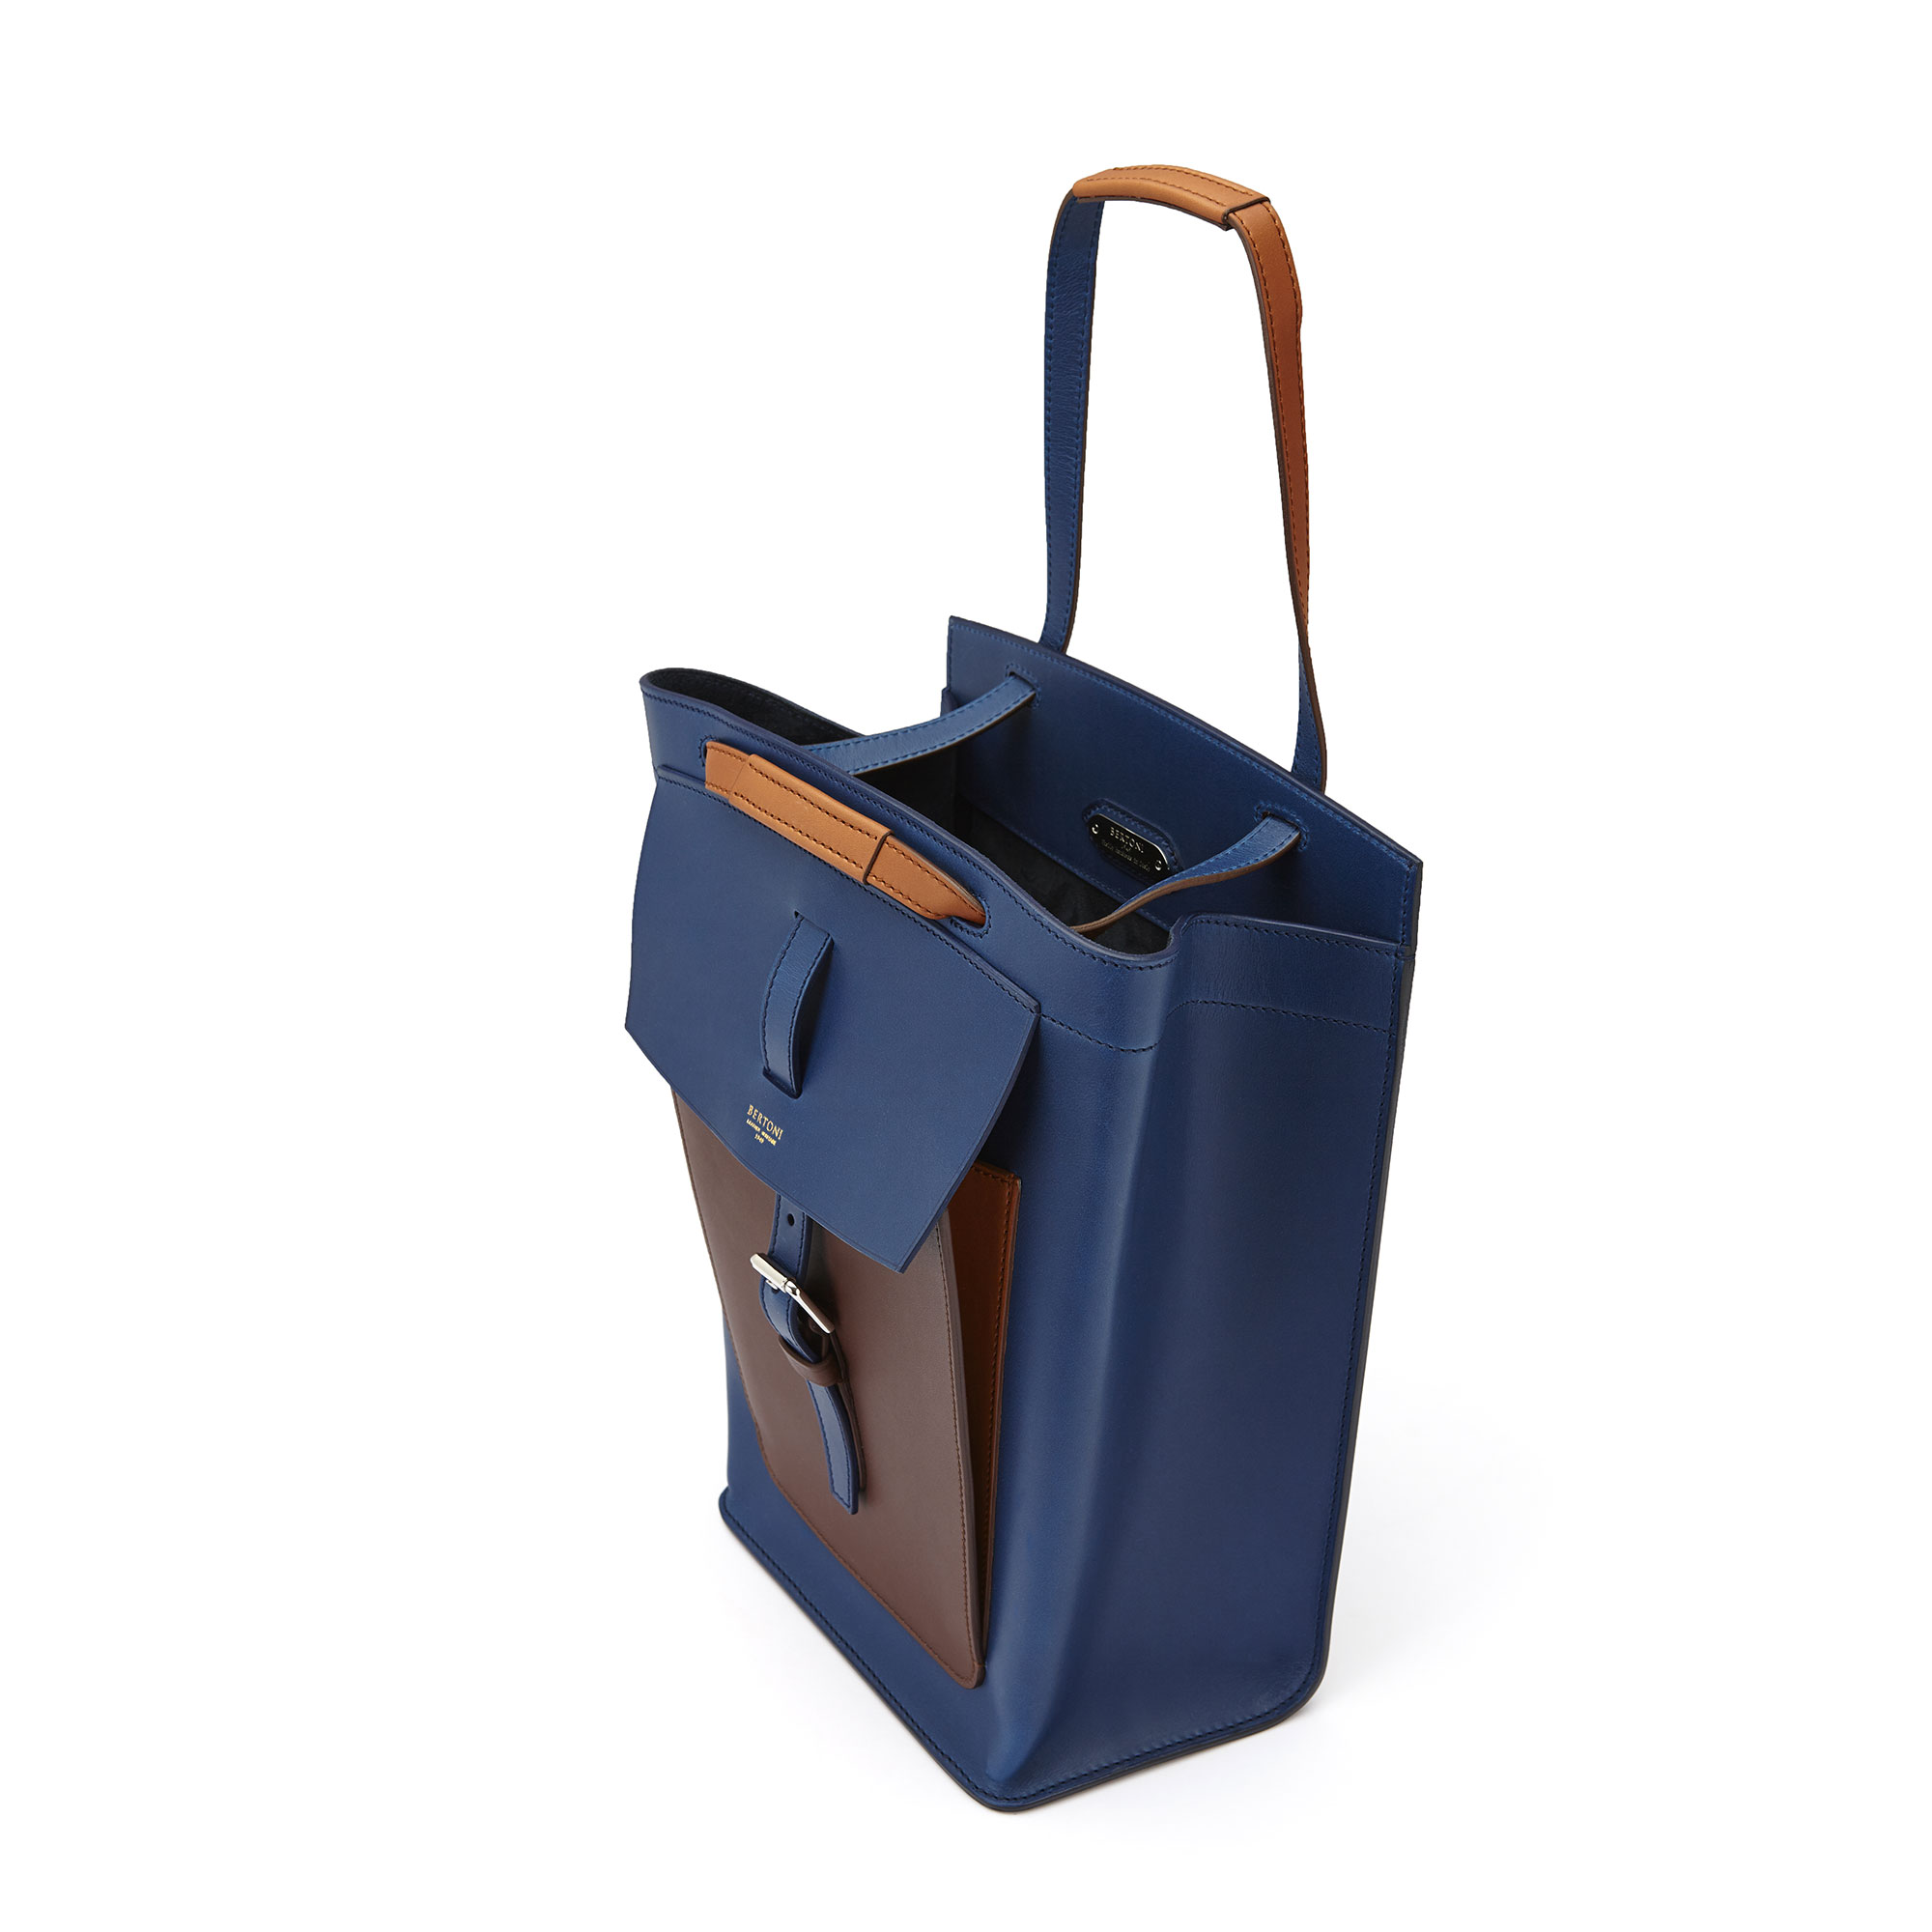 The blue, terrabruciata and brown french calf Arizona bucket bag by Bertoni 1949 03